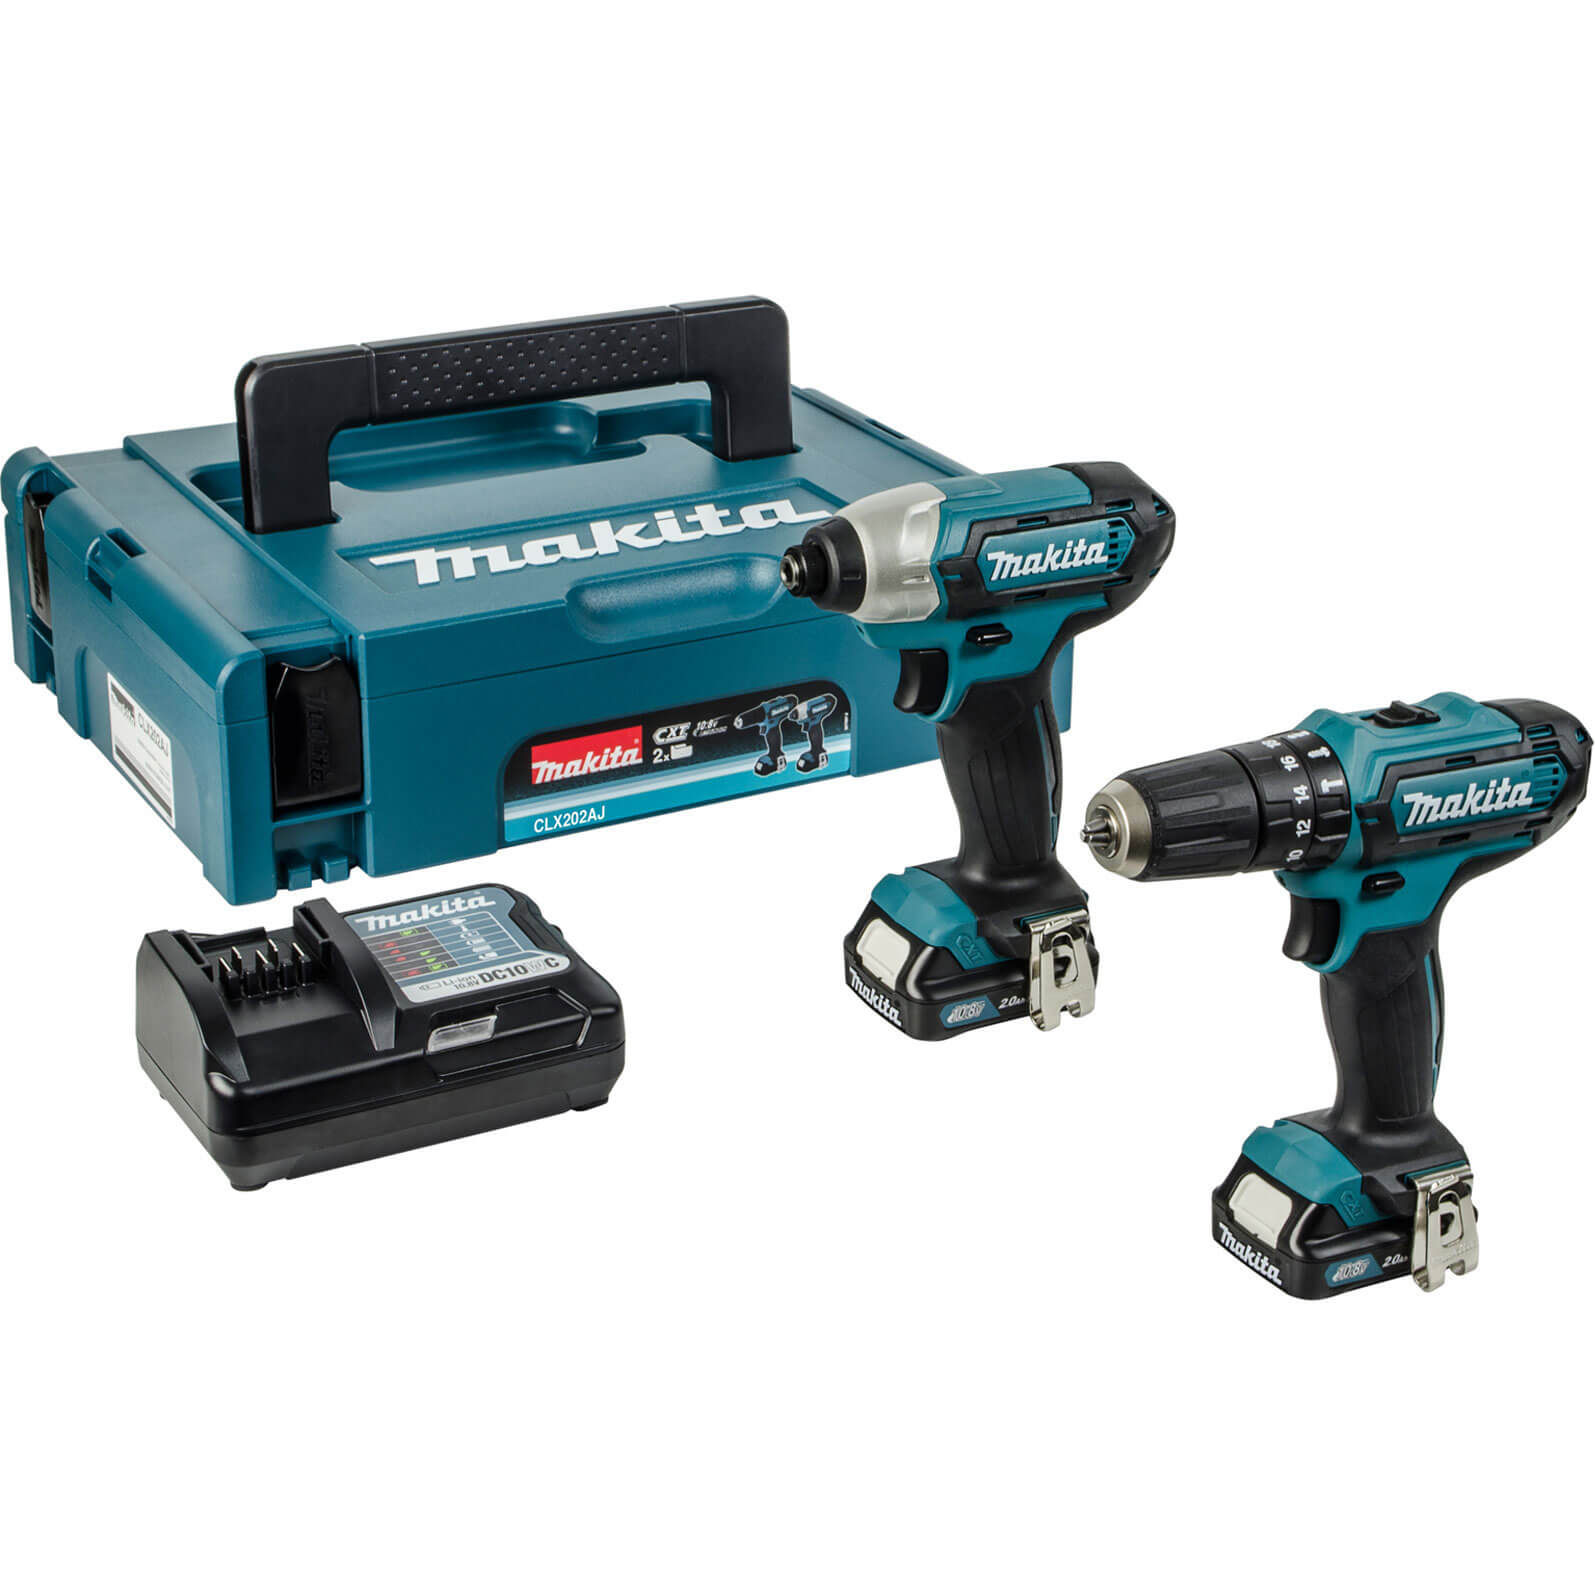 Image of Makita CLX202AJ 10.8v Cordless CXT Combi Drill & Impact Driver with 2 Lithium Ion Batteries 2ah